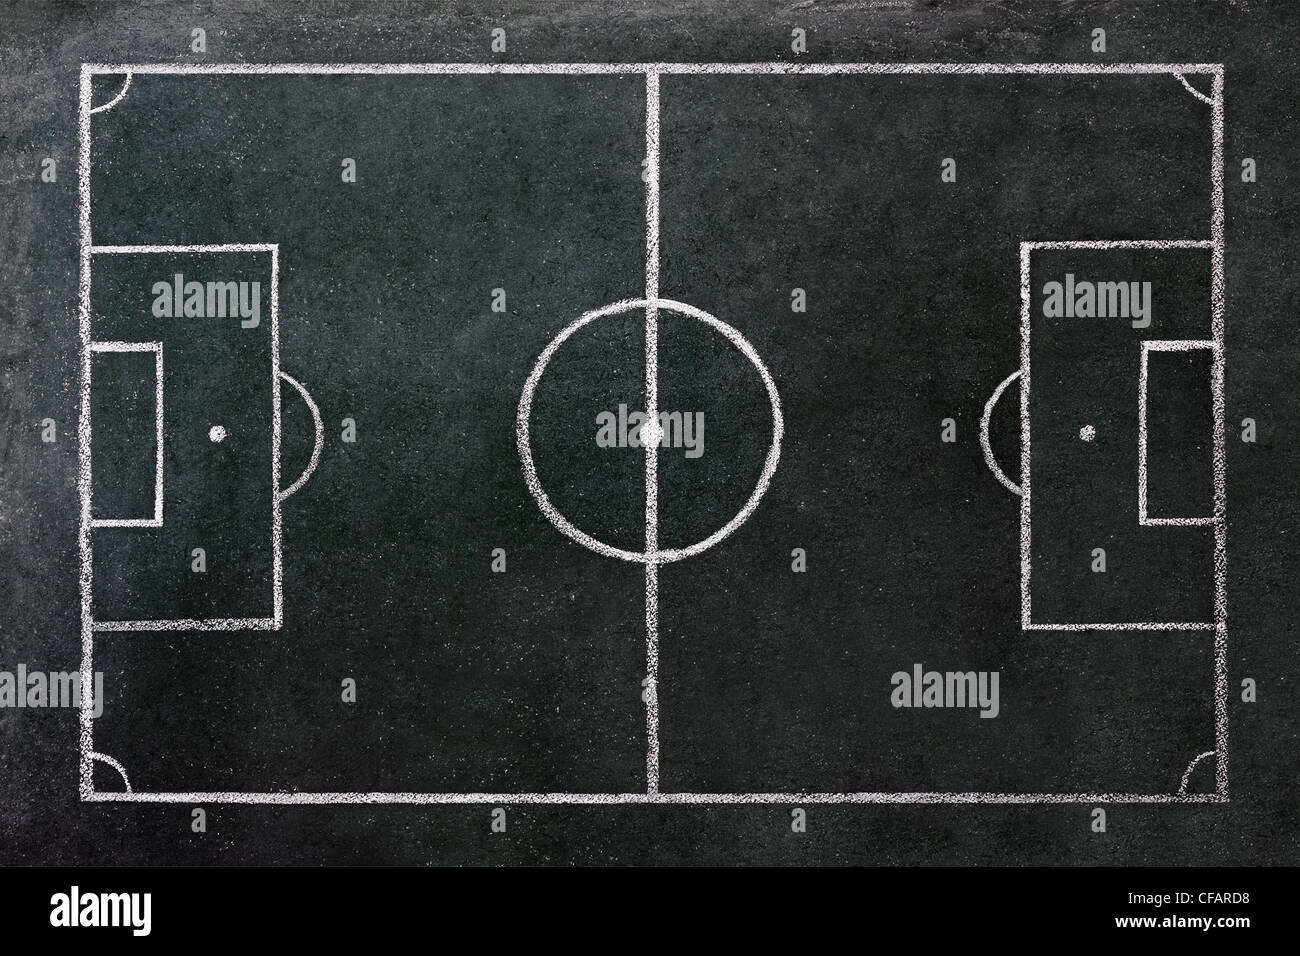 Terrain de football dessiné sur un tableau. Photo Stock